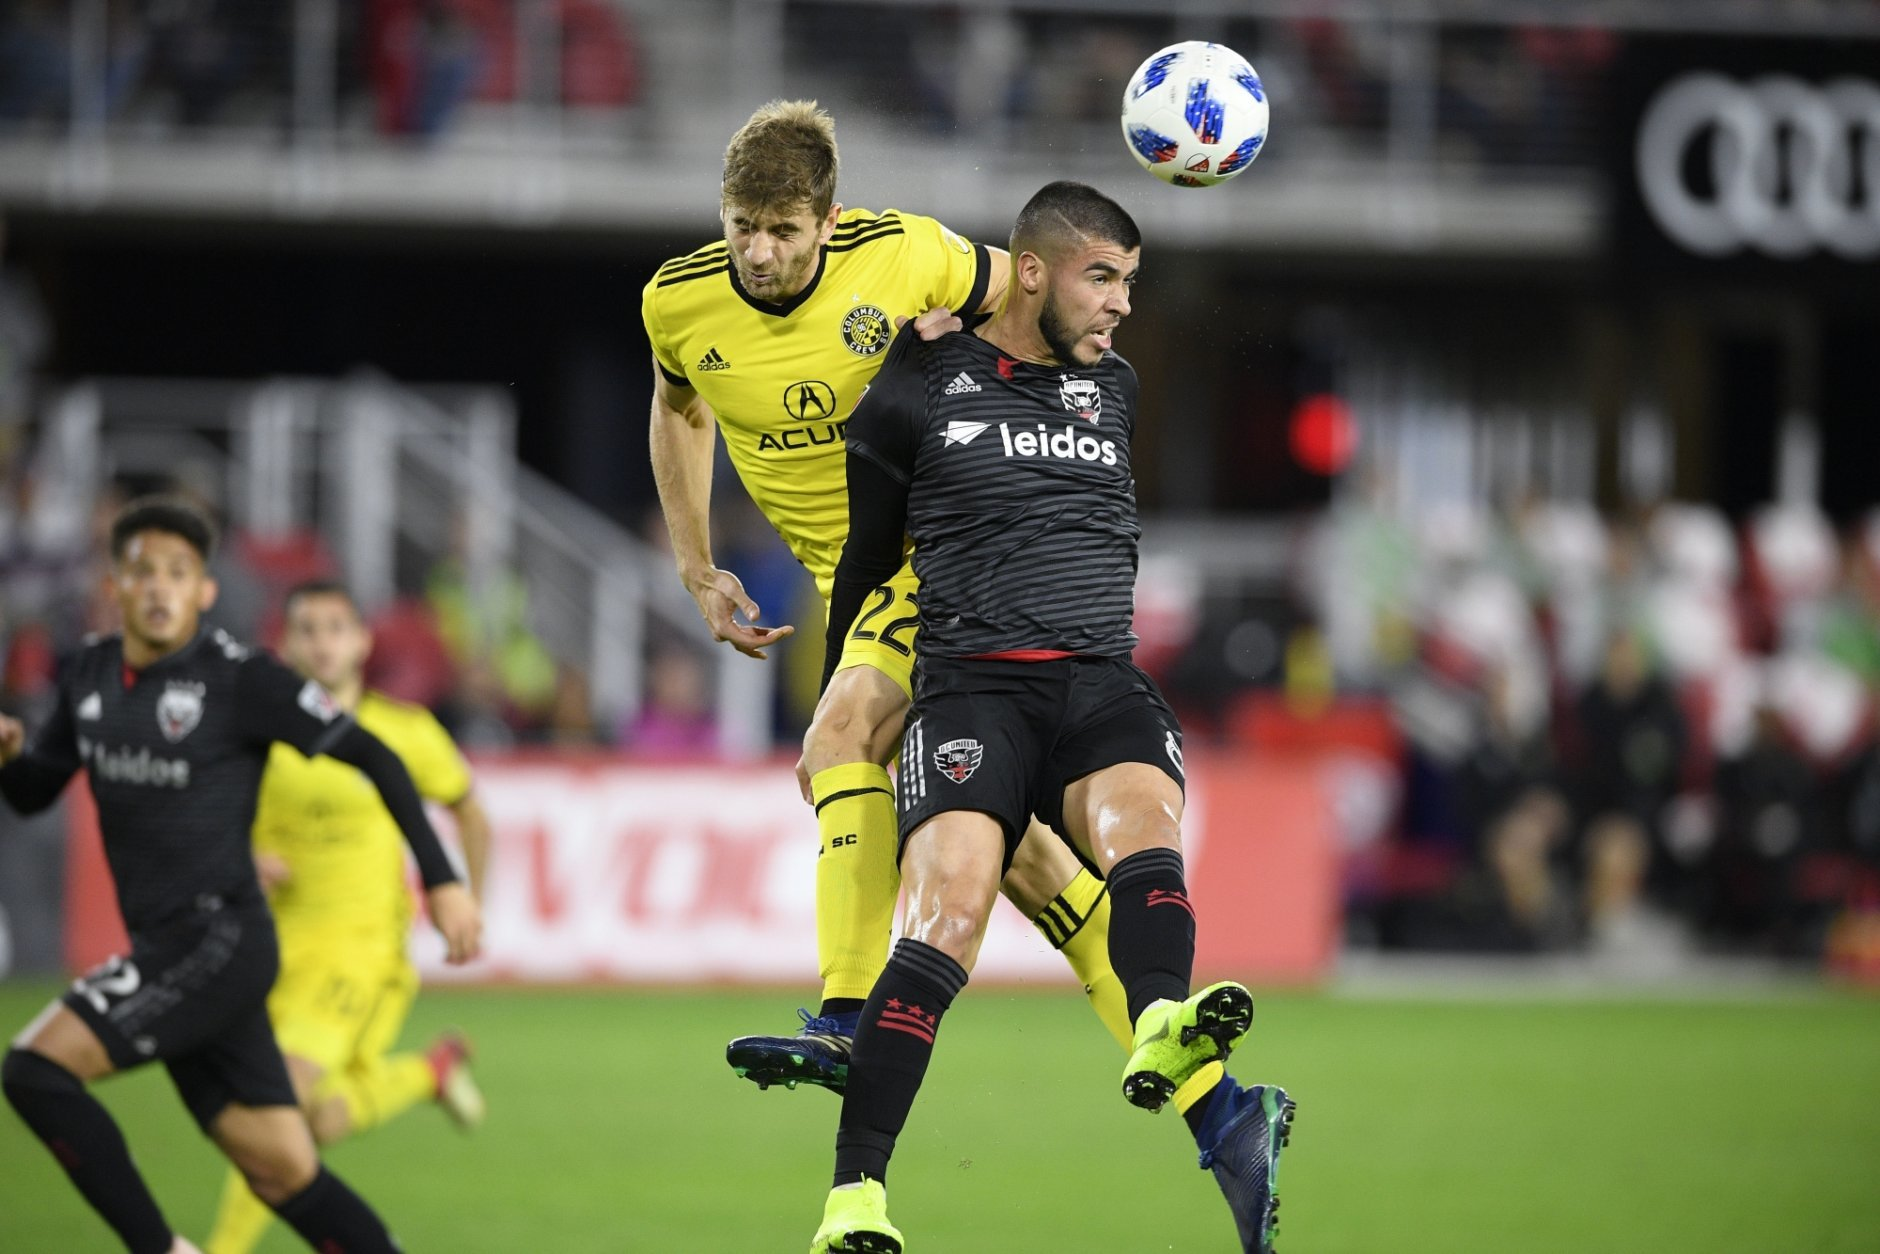 D.C. United midfielder Ulises Segura, front, battles for the ball against Columbus Crew SC defender Gaston Sauro (22) during the first half of an MLS playoff soccer match, Thursday, Nov. 1, 2018, in Washington. (AP Photo/Nick Wass)